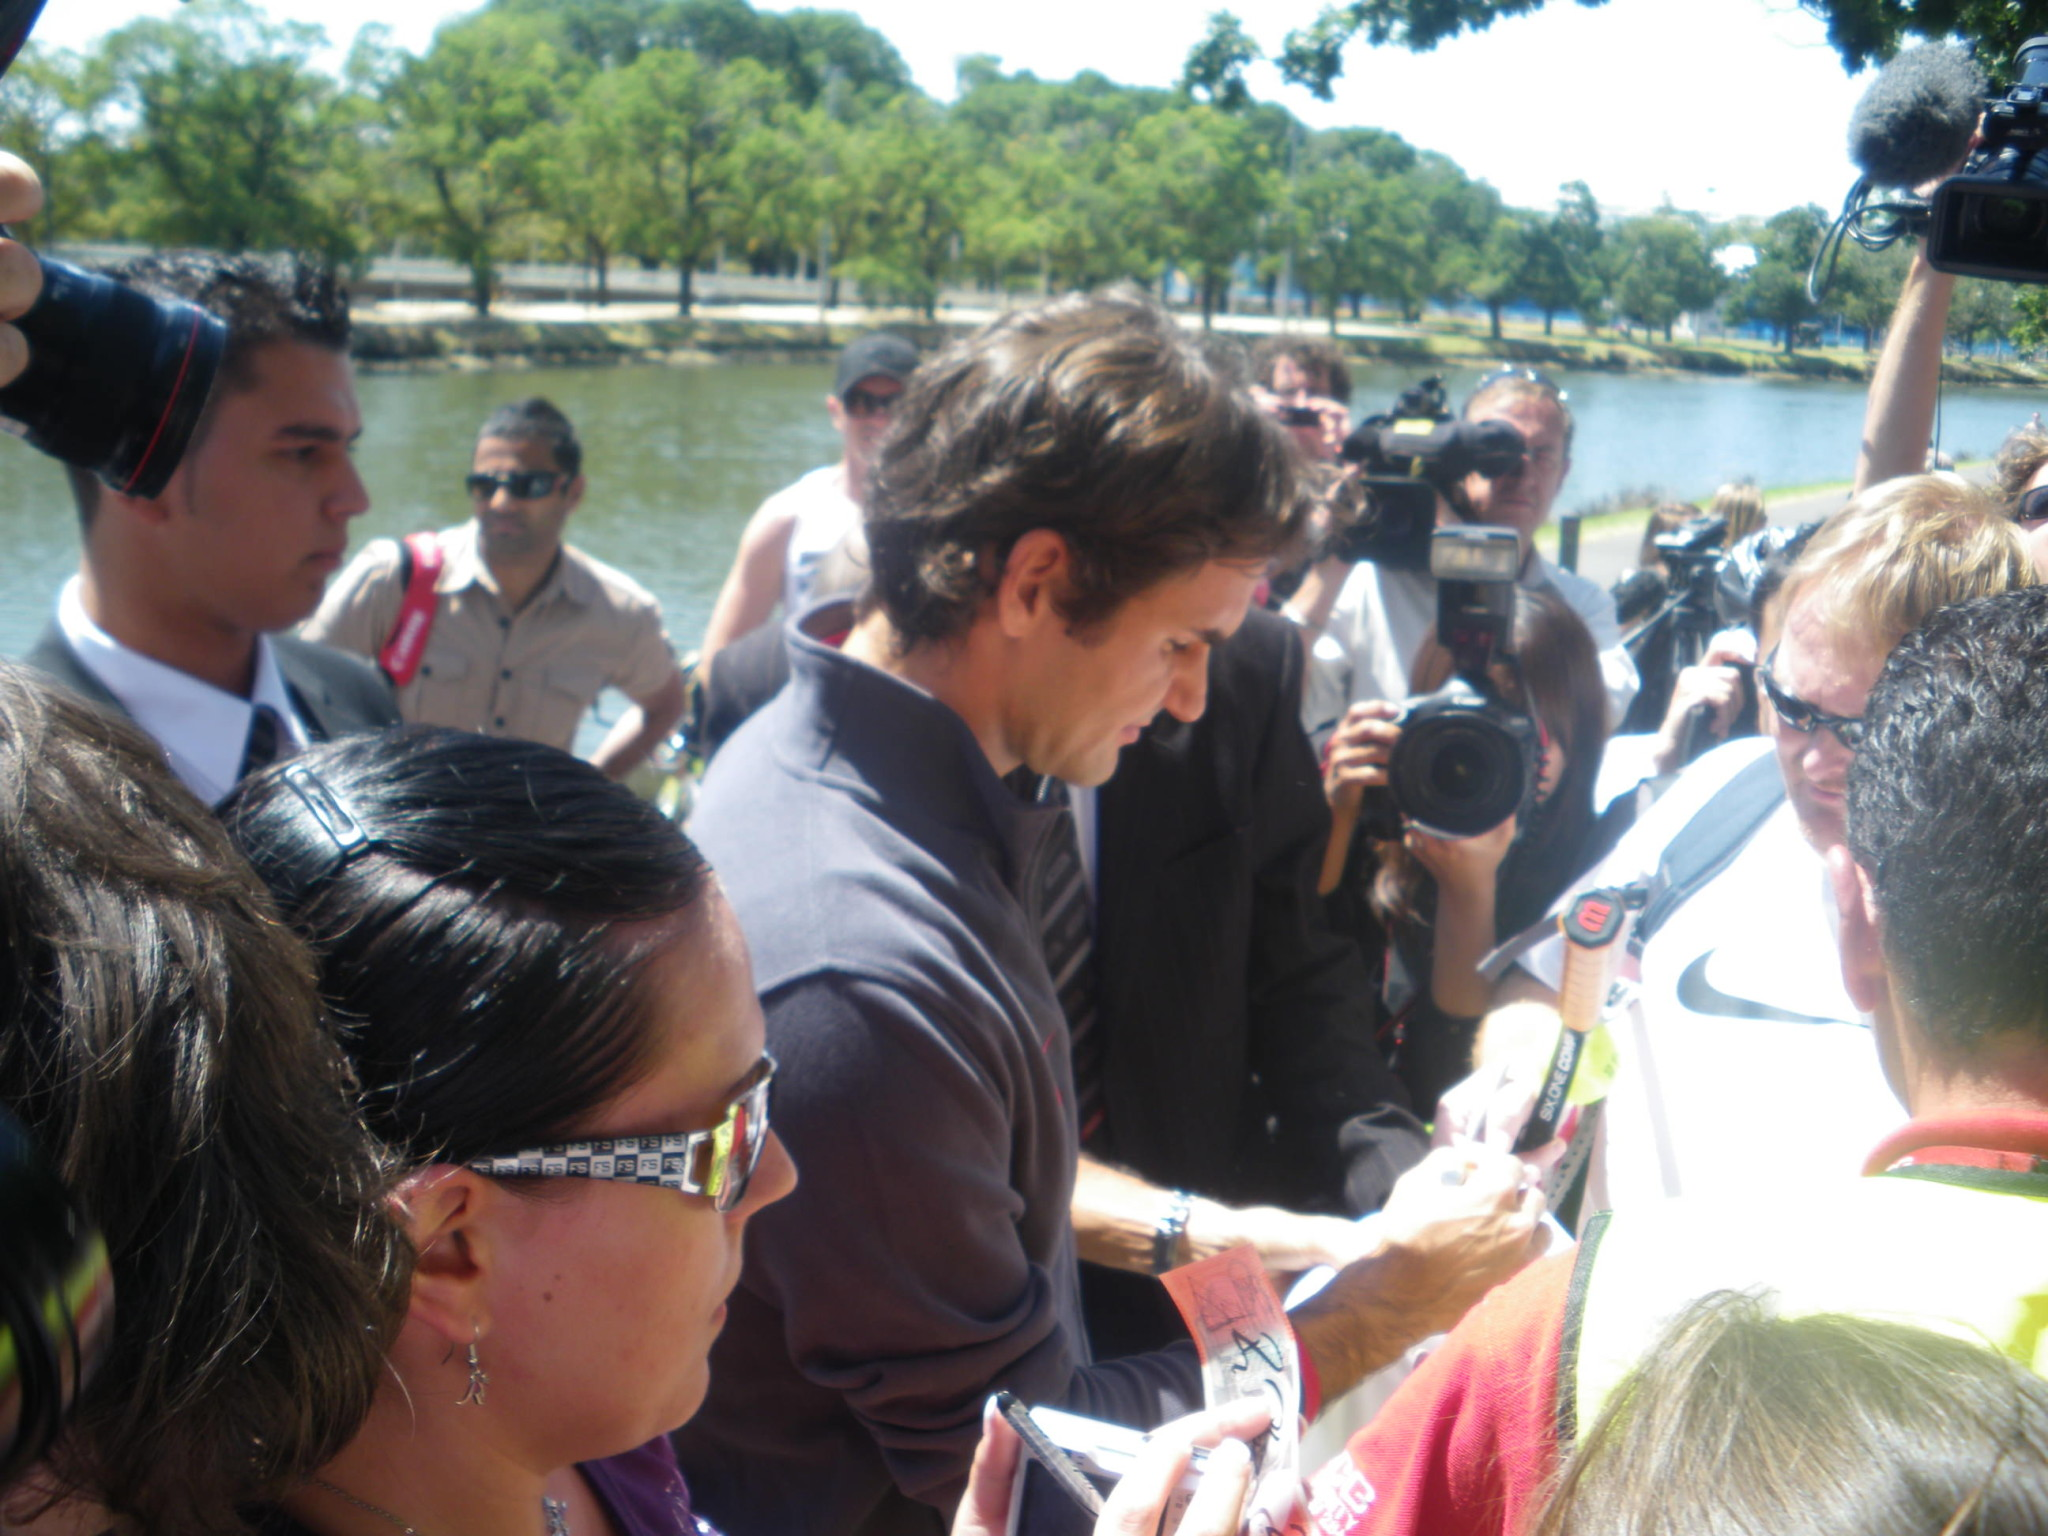 Jonny Blair met Roger Federer in Melbourne in 2010. He lives a lifestyle of travel.